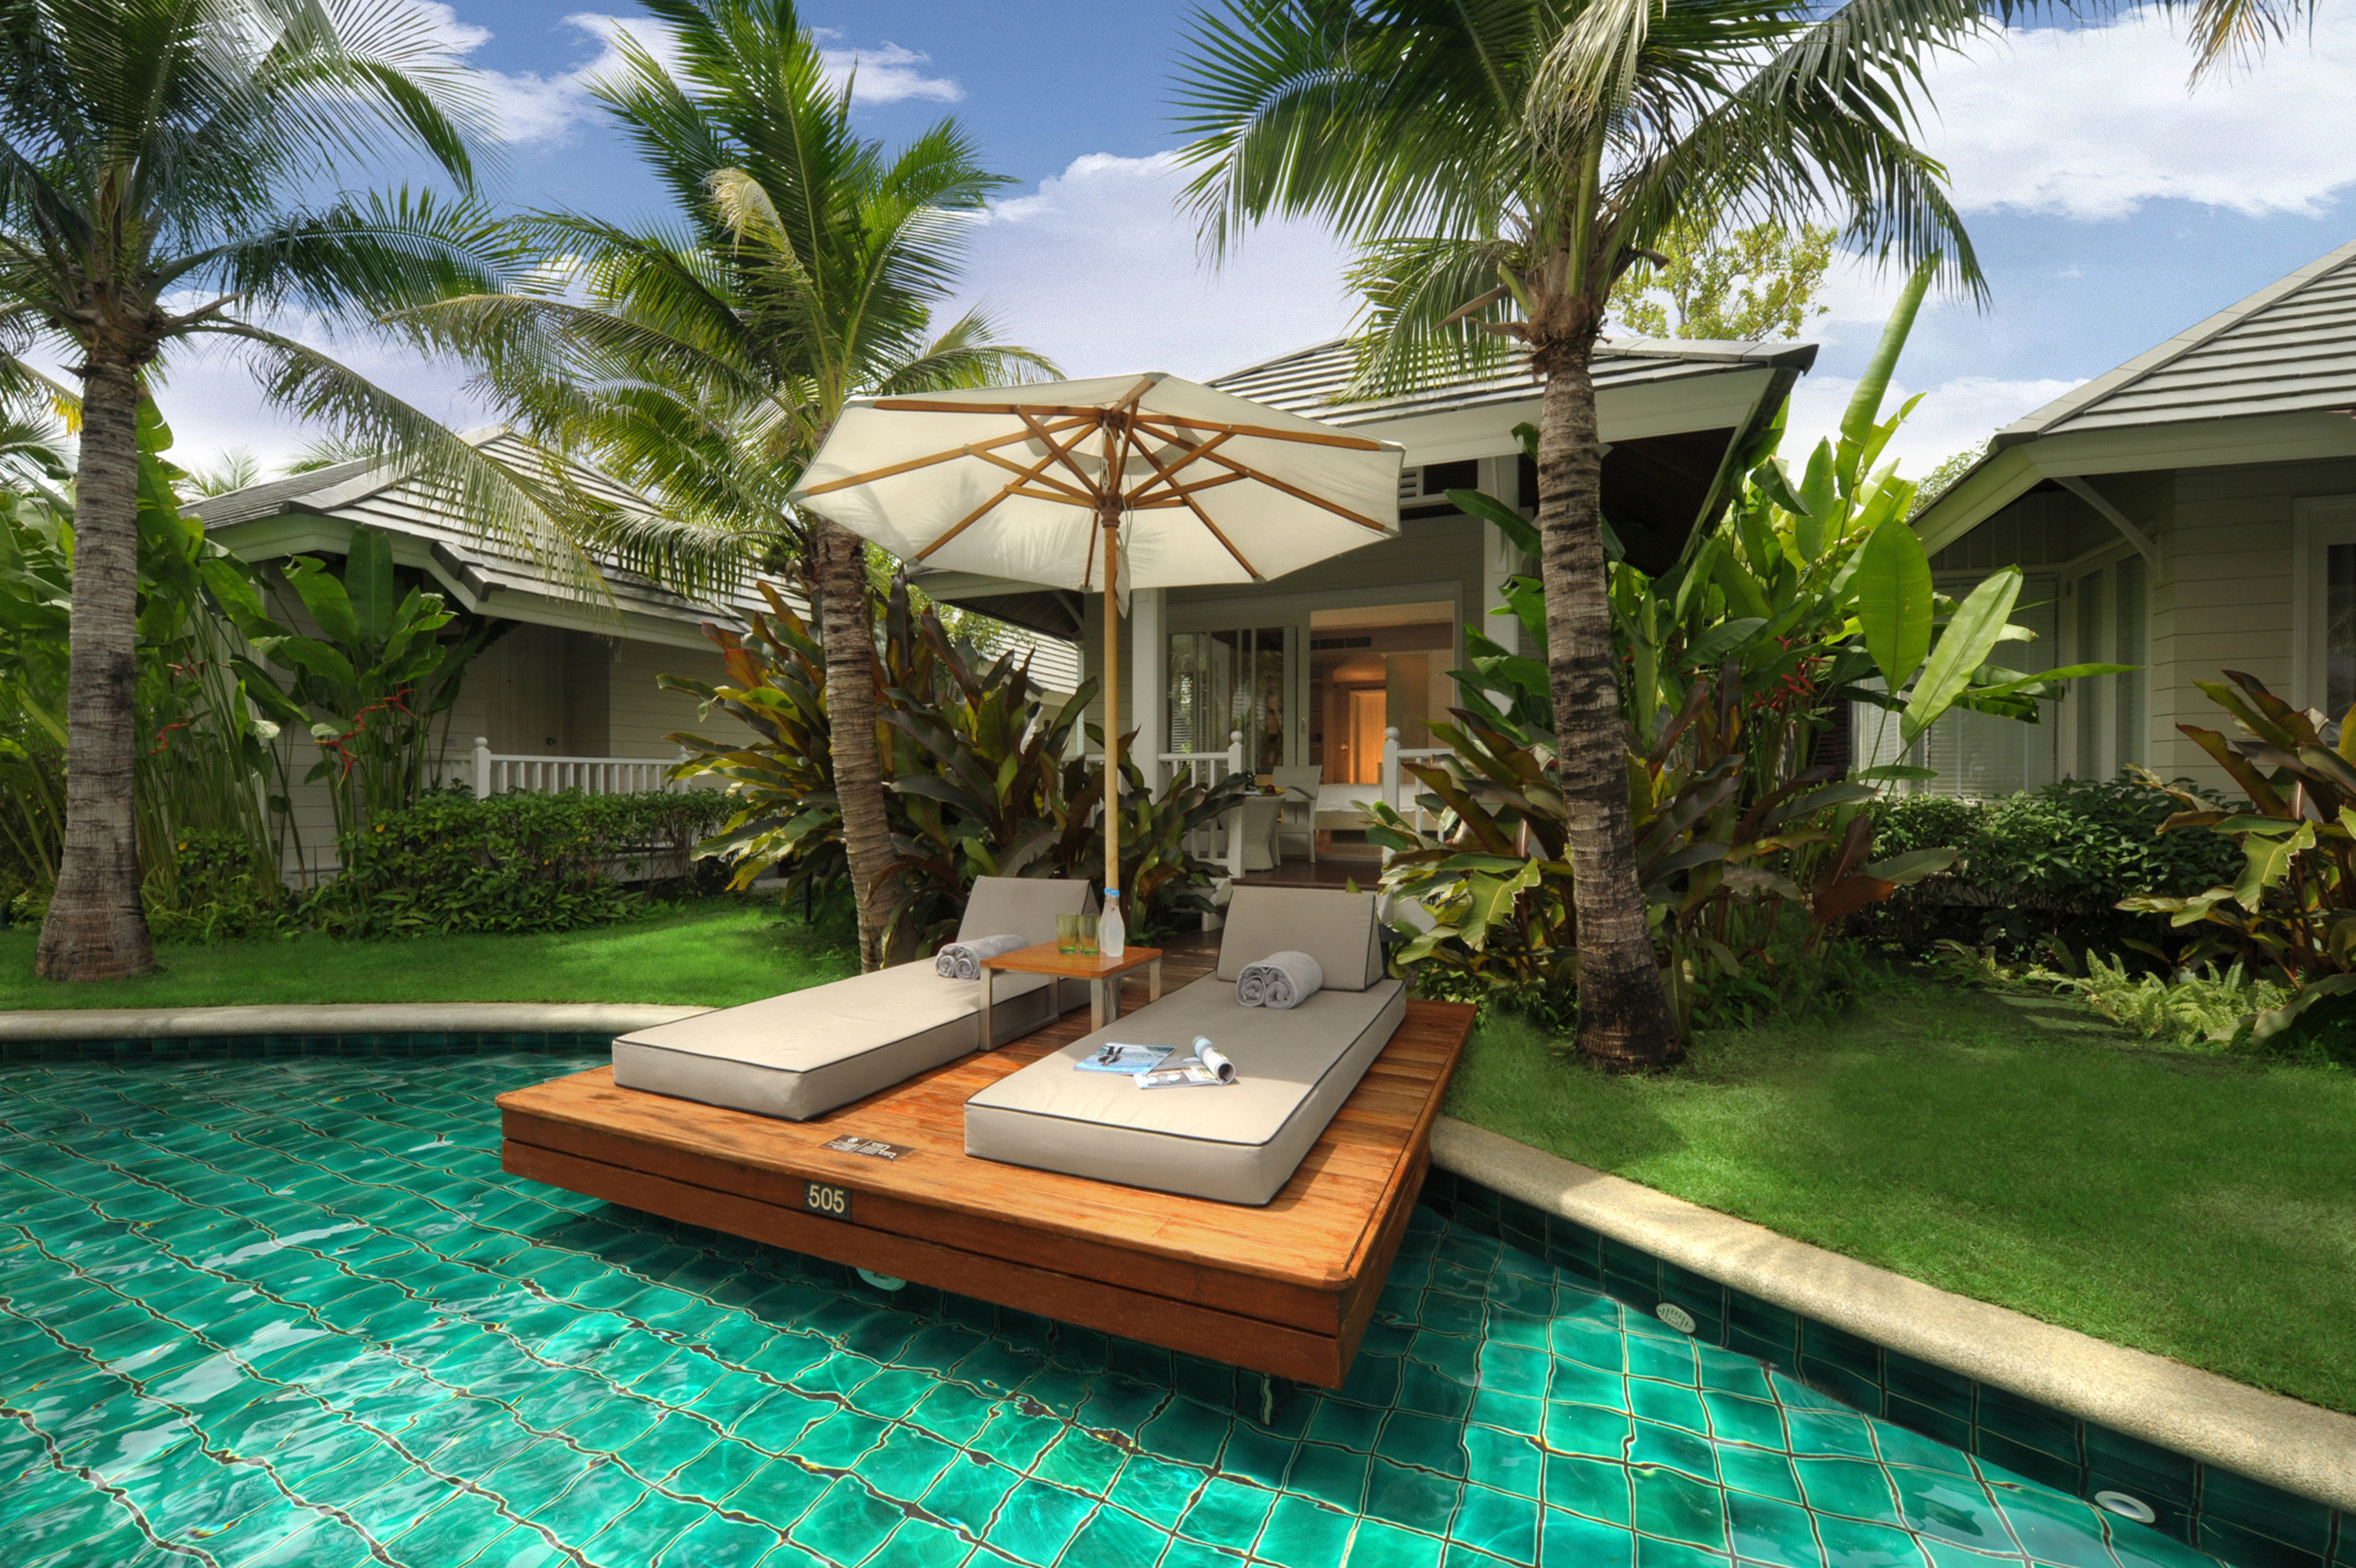 Elegant Jungle Lounge Modern Outdoors Patio Pool Romance Romantic Suite Tropical Villa tree swimming pool house property Resort condominium home backyard mansion outdoor structure eco hotel Courtyard